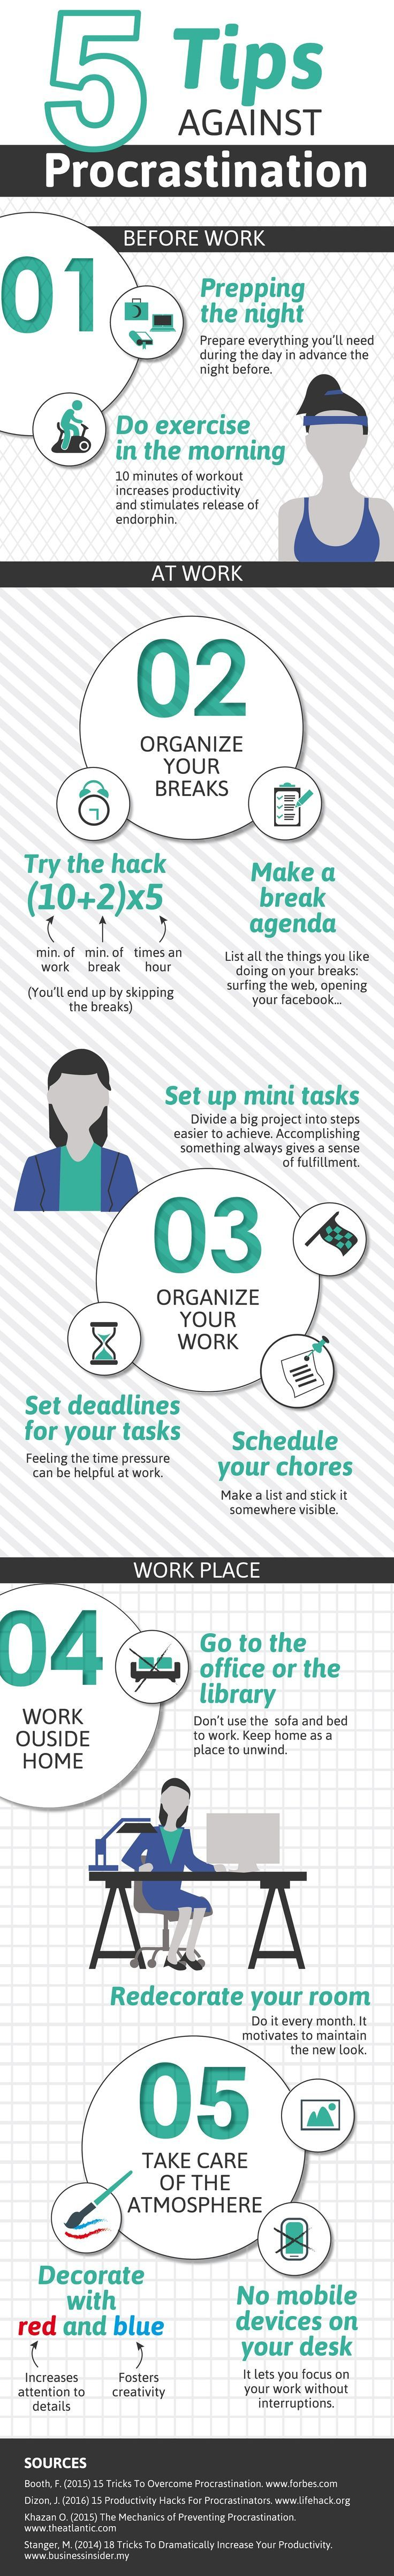 5 Tips against Procrastination #Infographic #TimeMangement